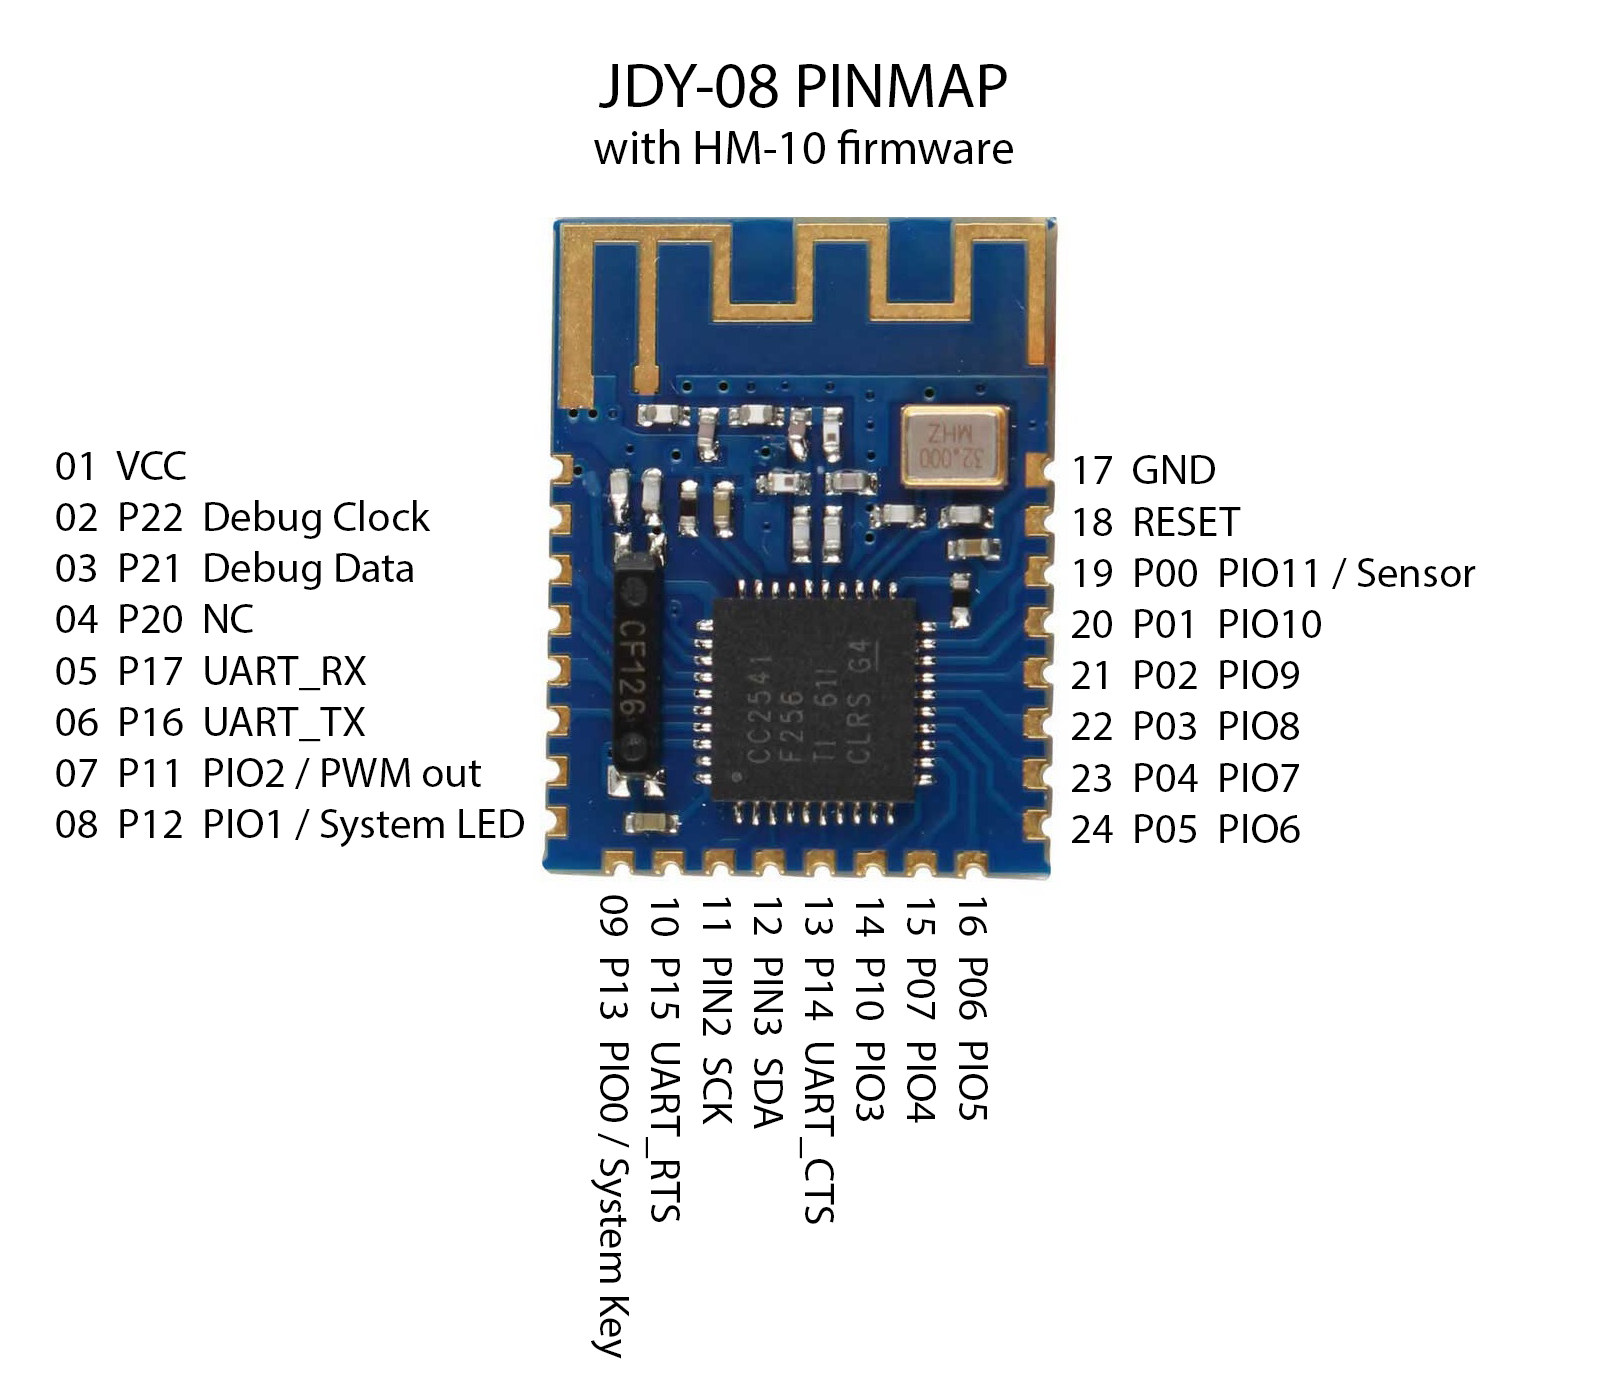 JDY-08-with-HM-10-firmware